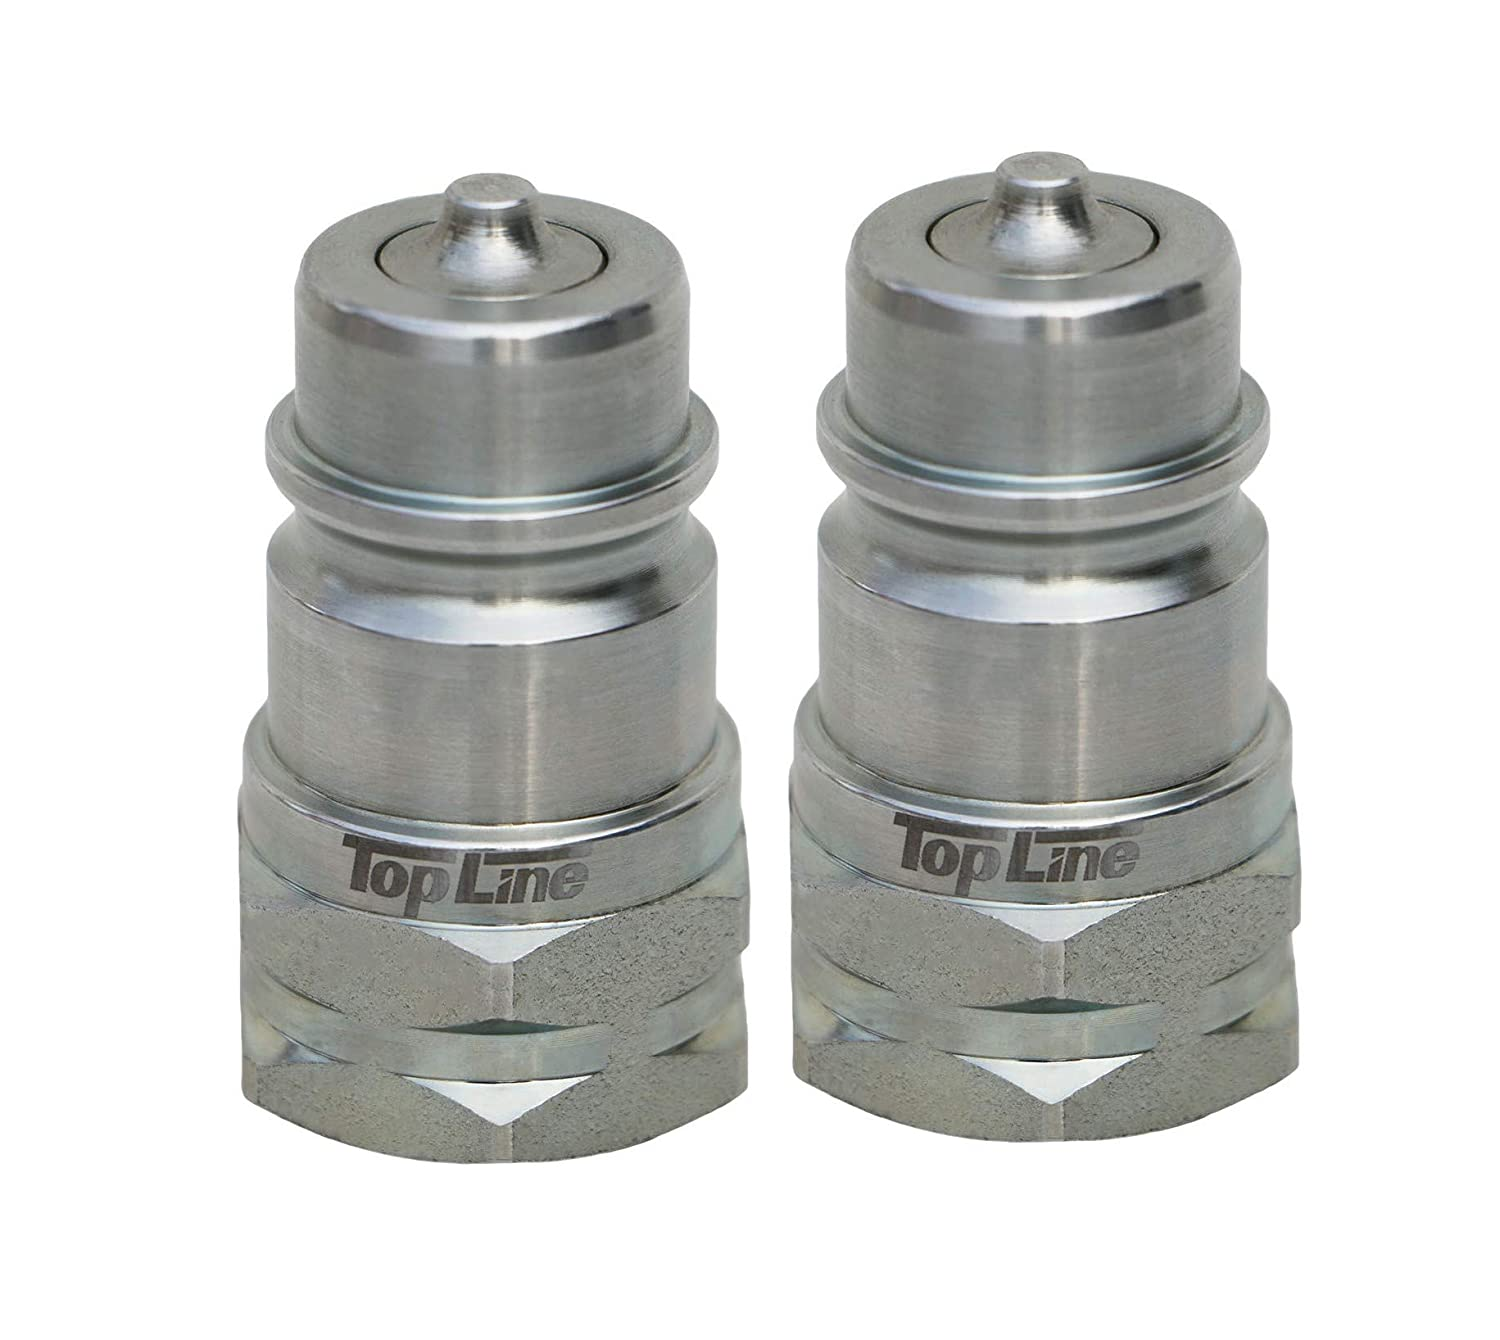 TL37-M 2 pack Ag Quick Coupler Male Nipple - Poppet Style Hydraulic Tractor Coupling - Iso5675 1/2' Standard size Most Agricultural Tractors and Machinery TopLine Iso5675-P12-M